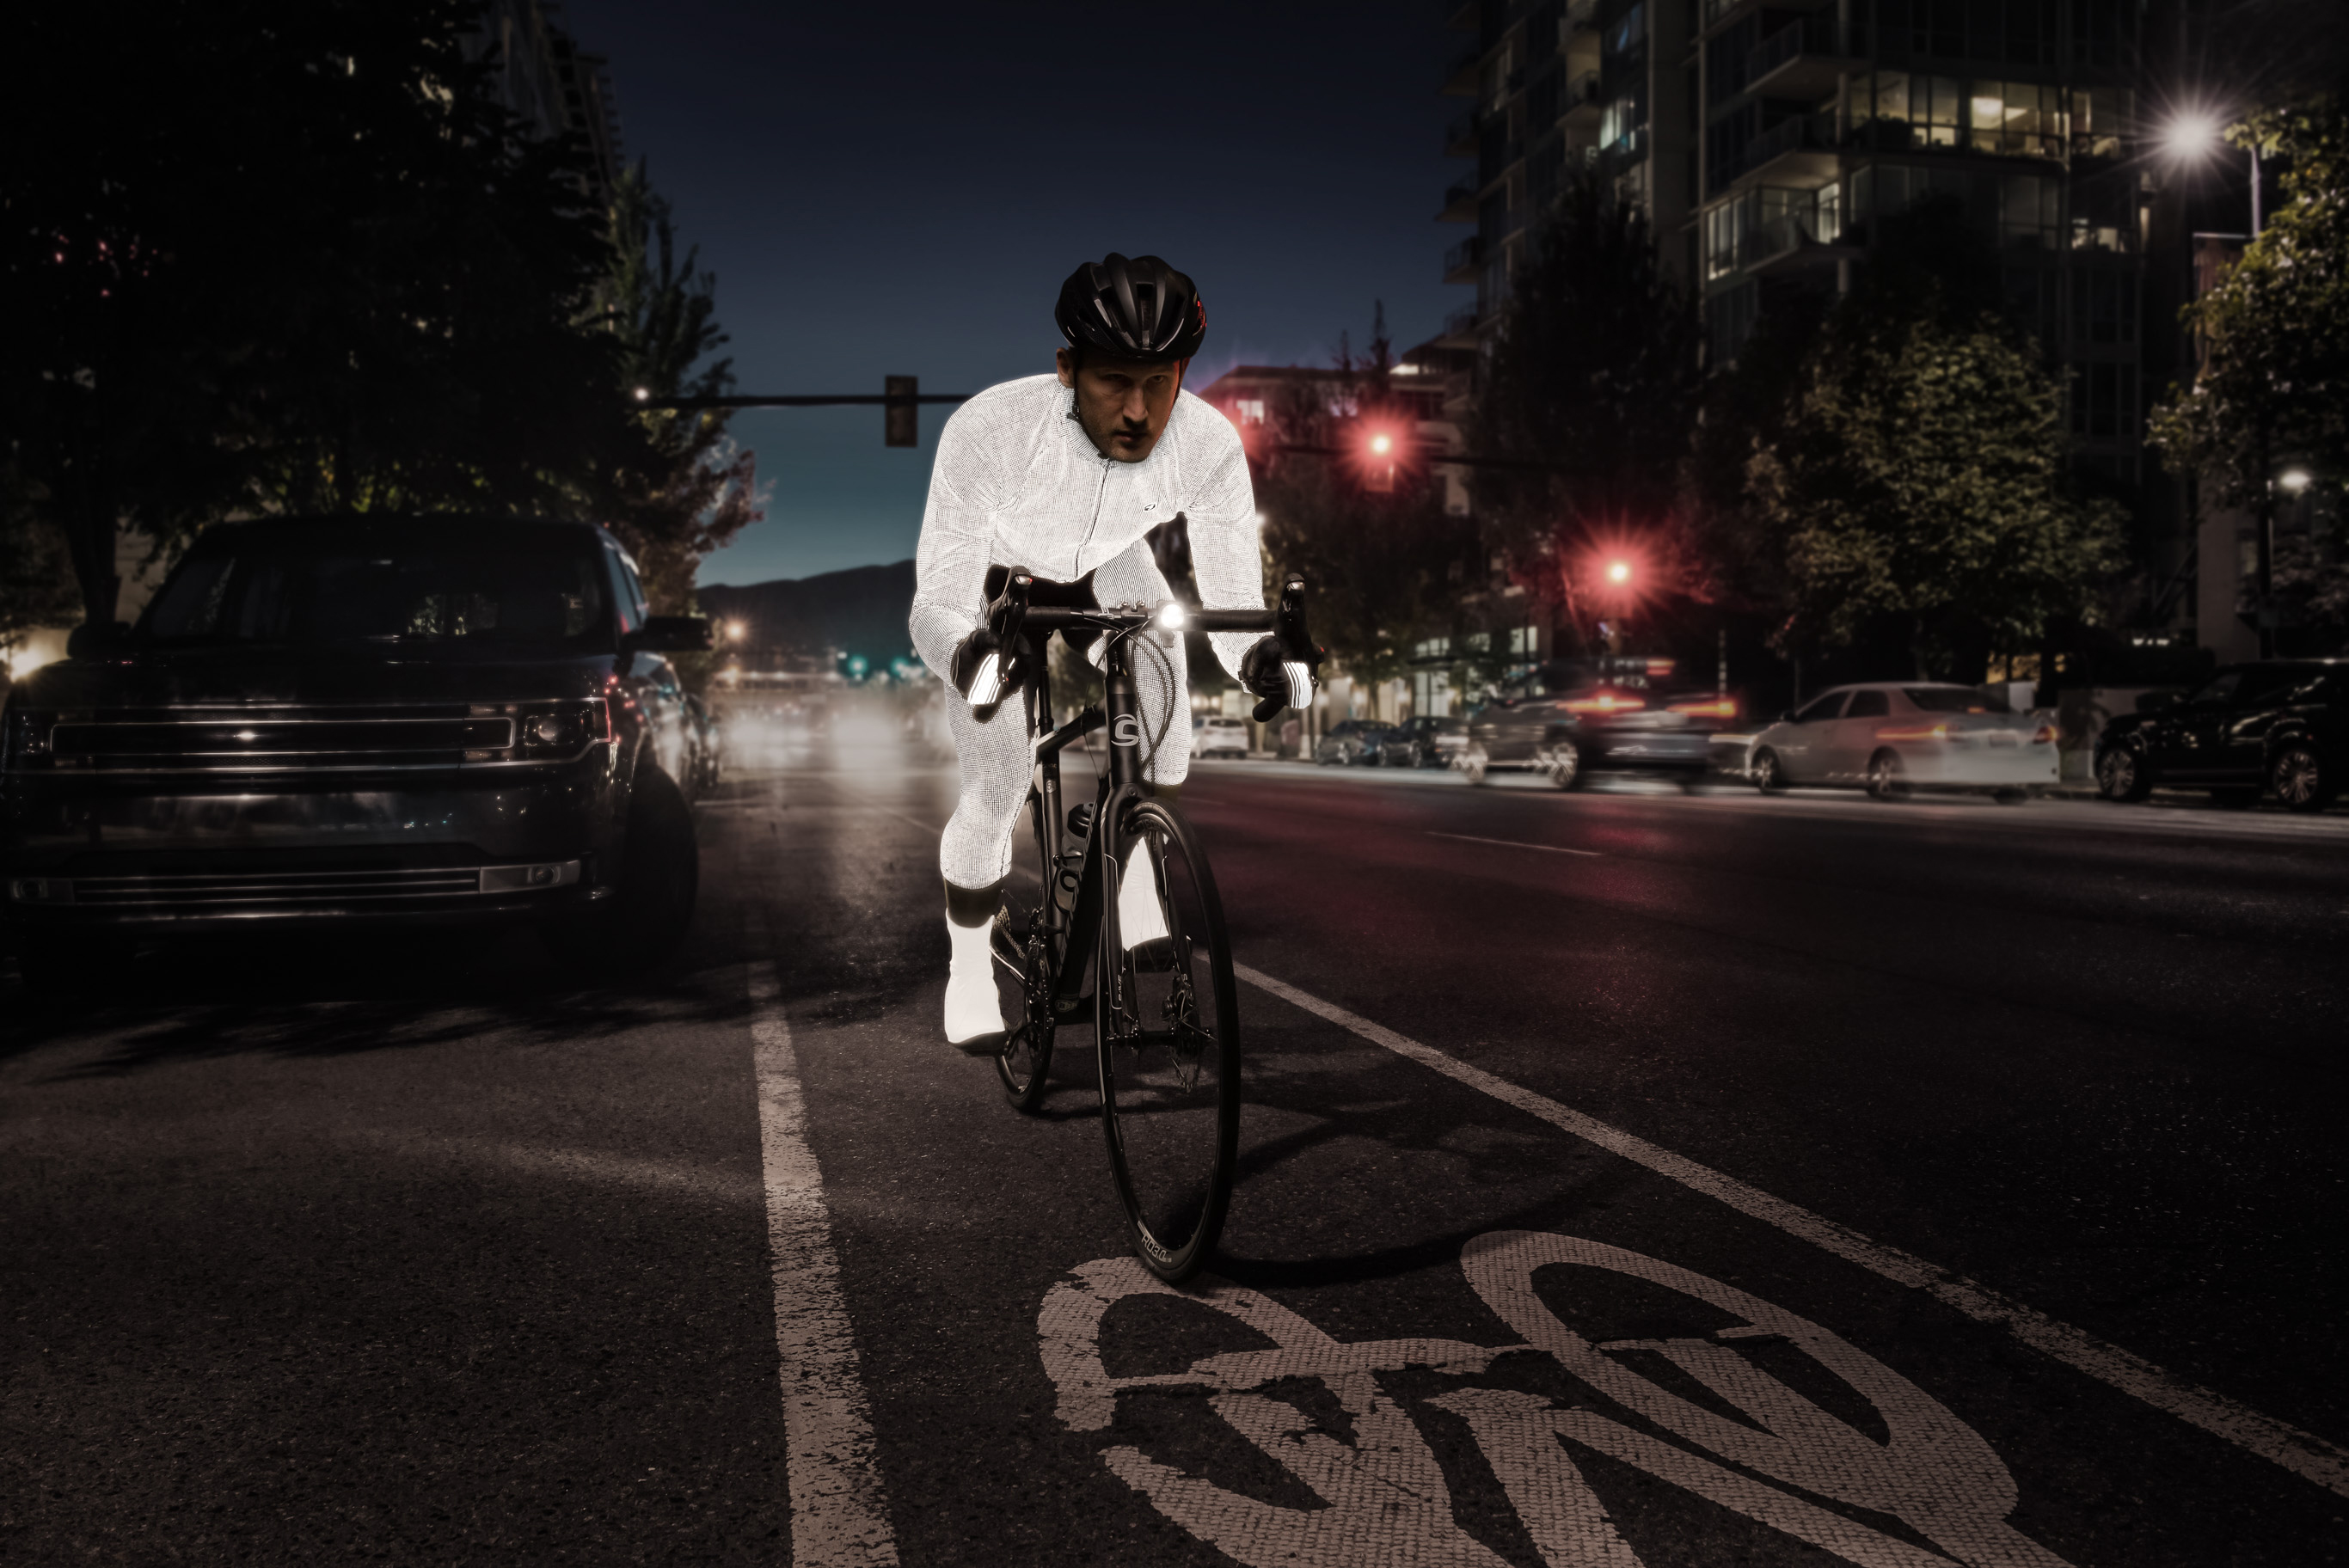 SUGOI Zap Thermal Kit - ultra reflective by night